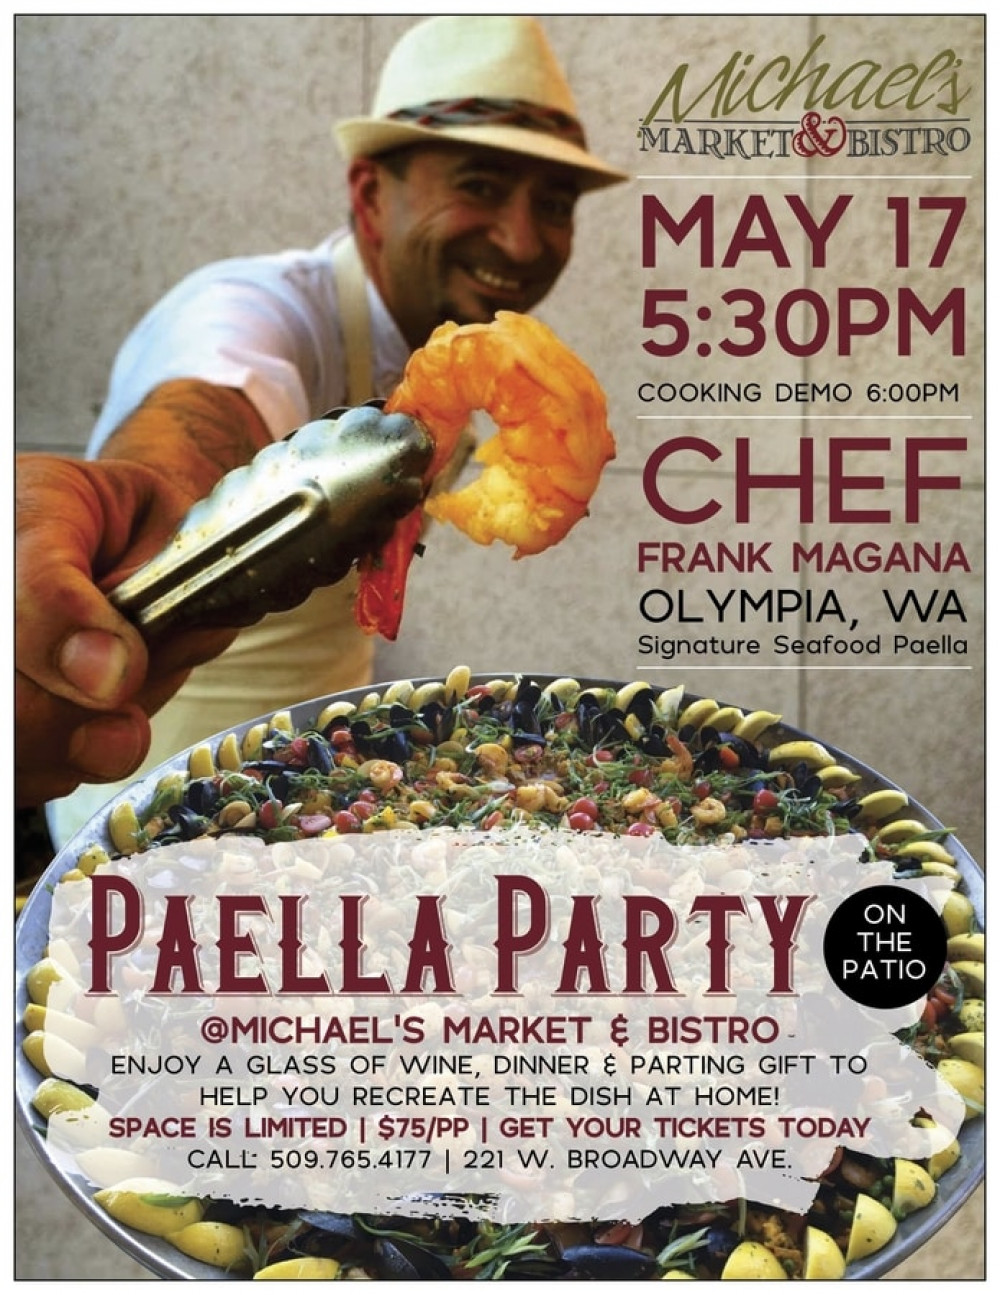 Paella Party on the Patio